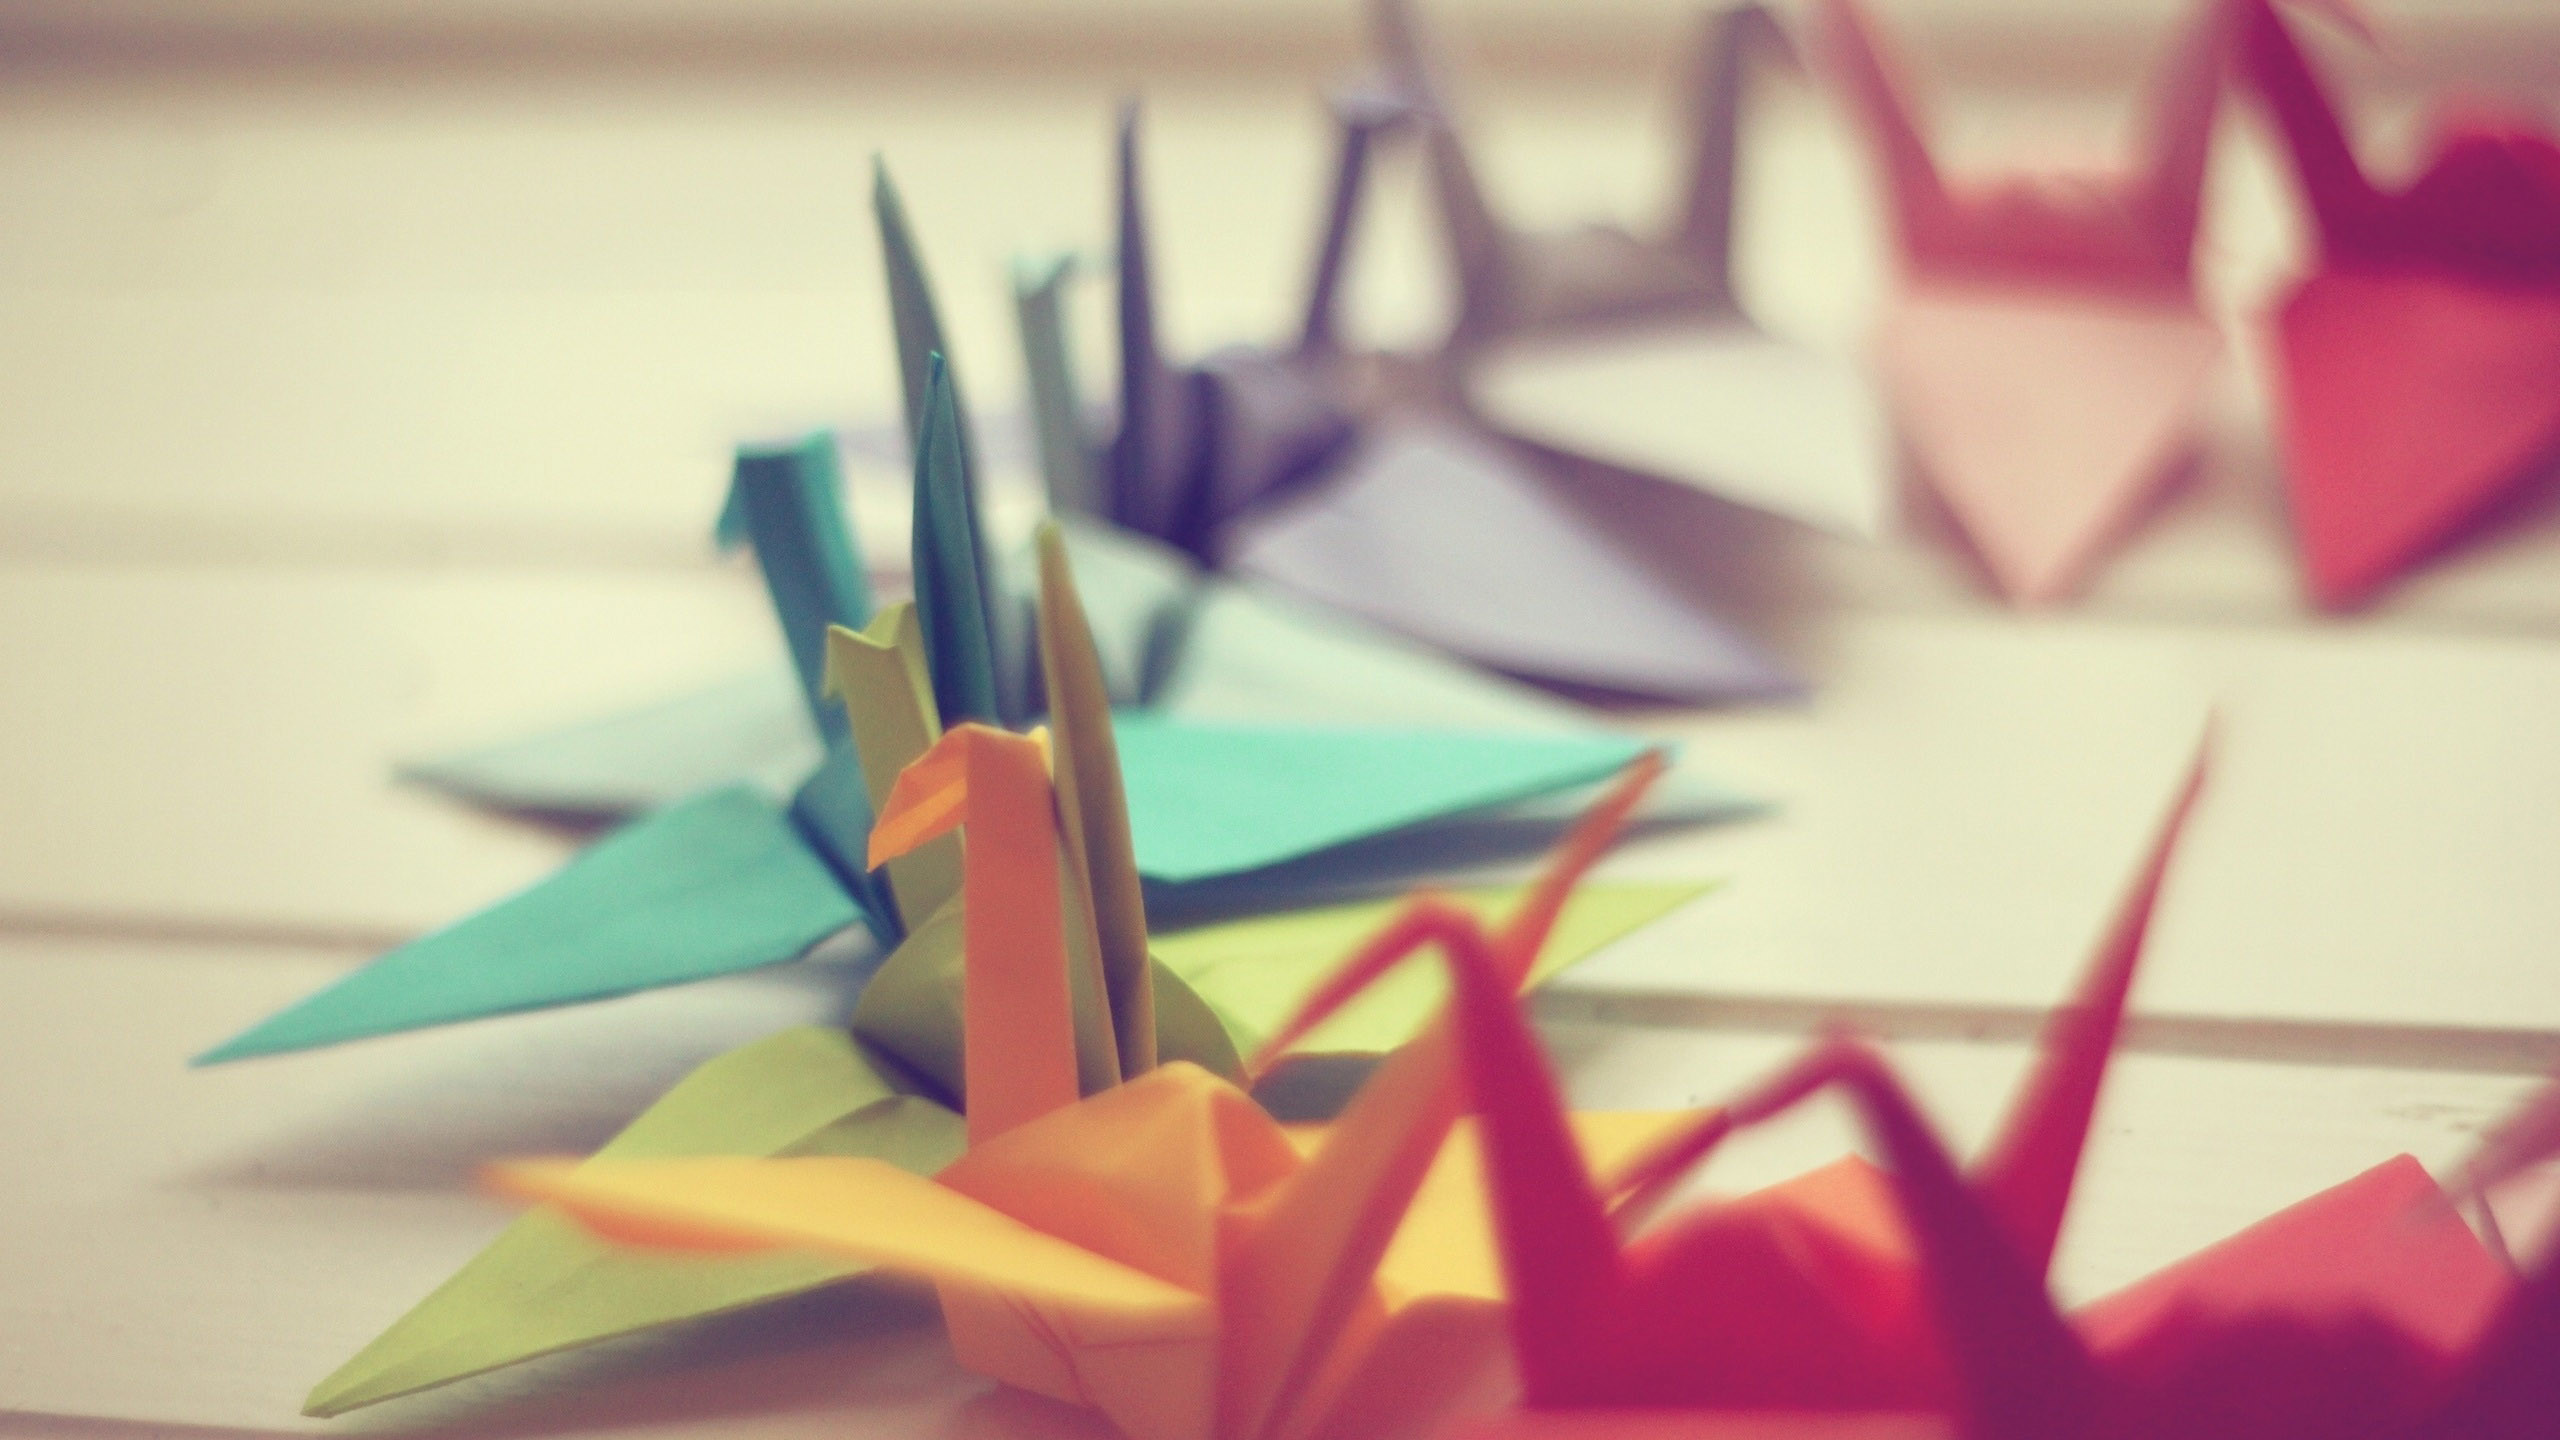 2560x1440 Colorful Origami Wallpaper